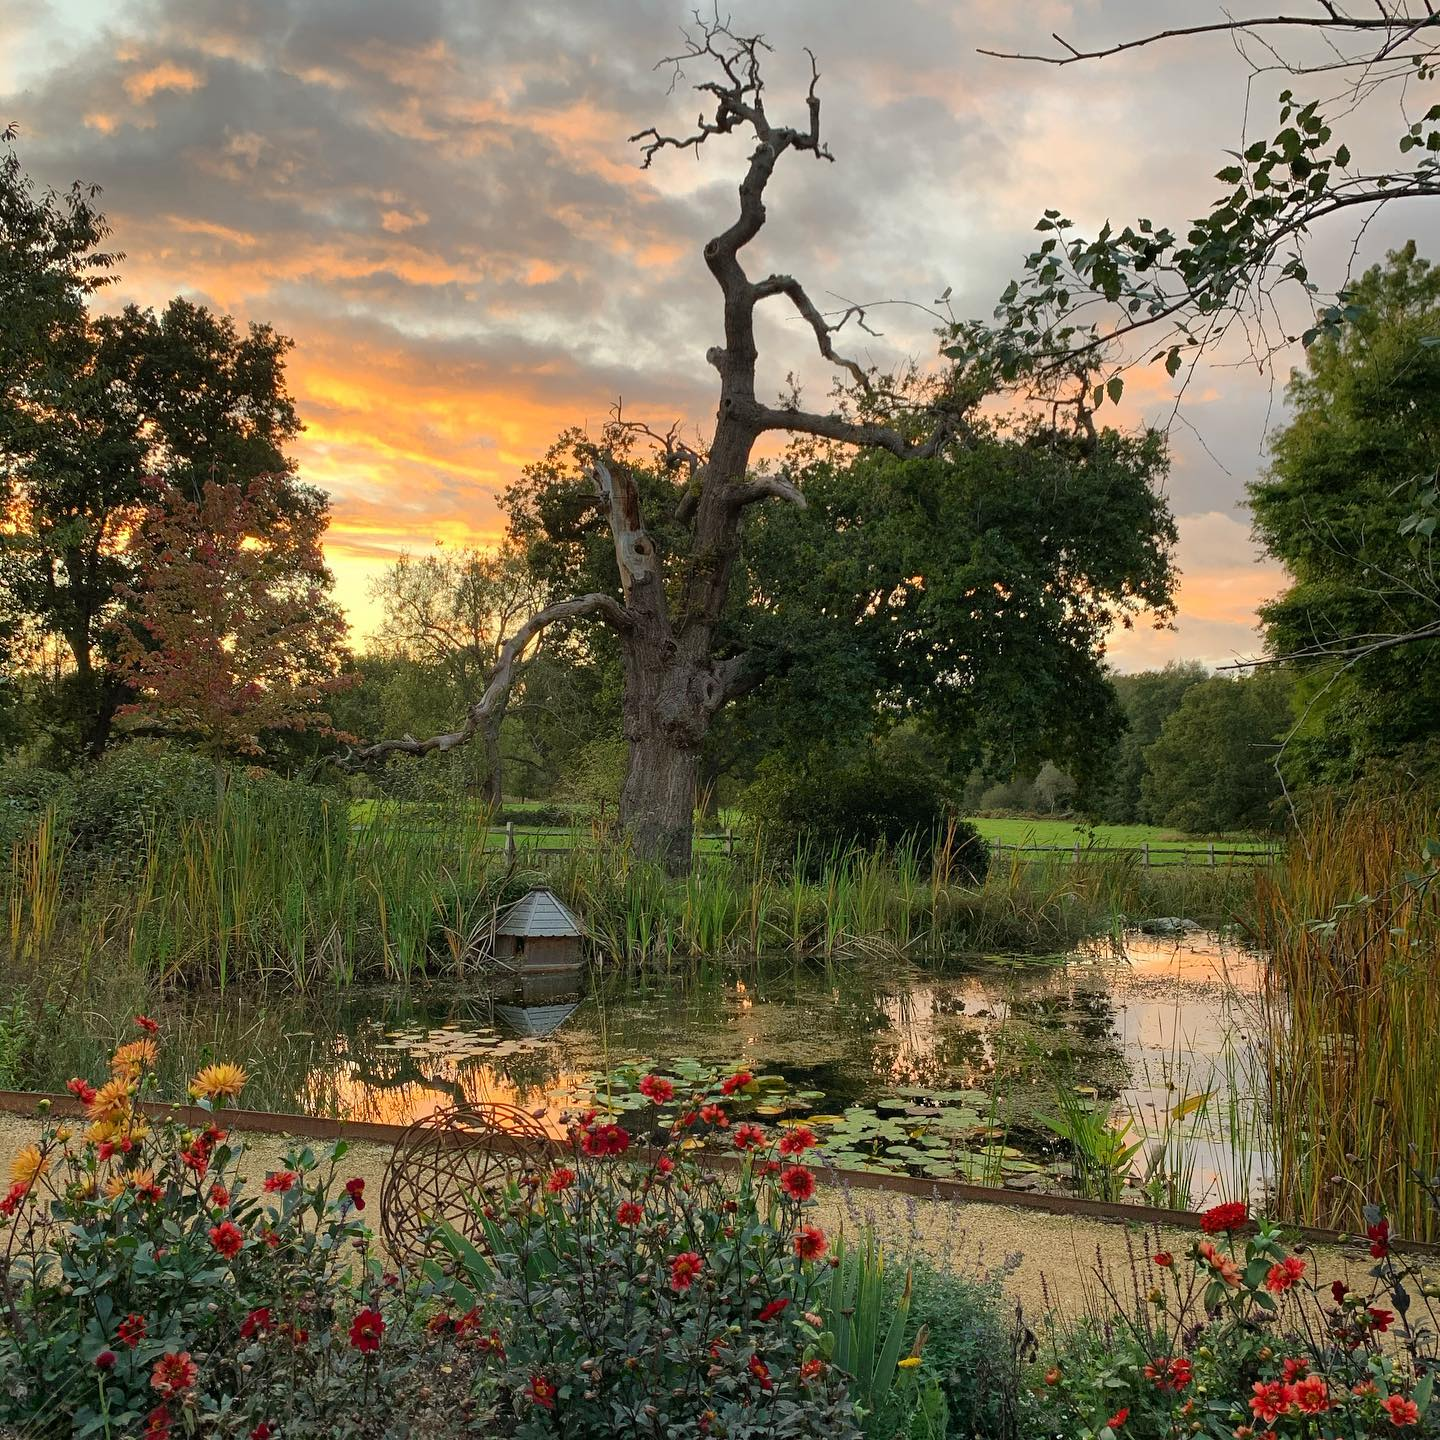 Autumn evening by the pond